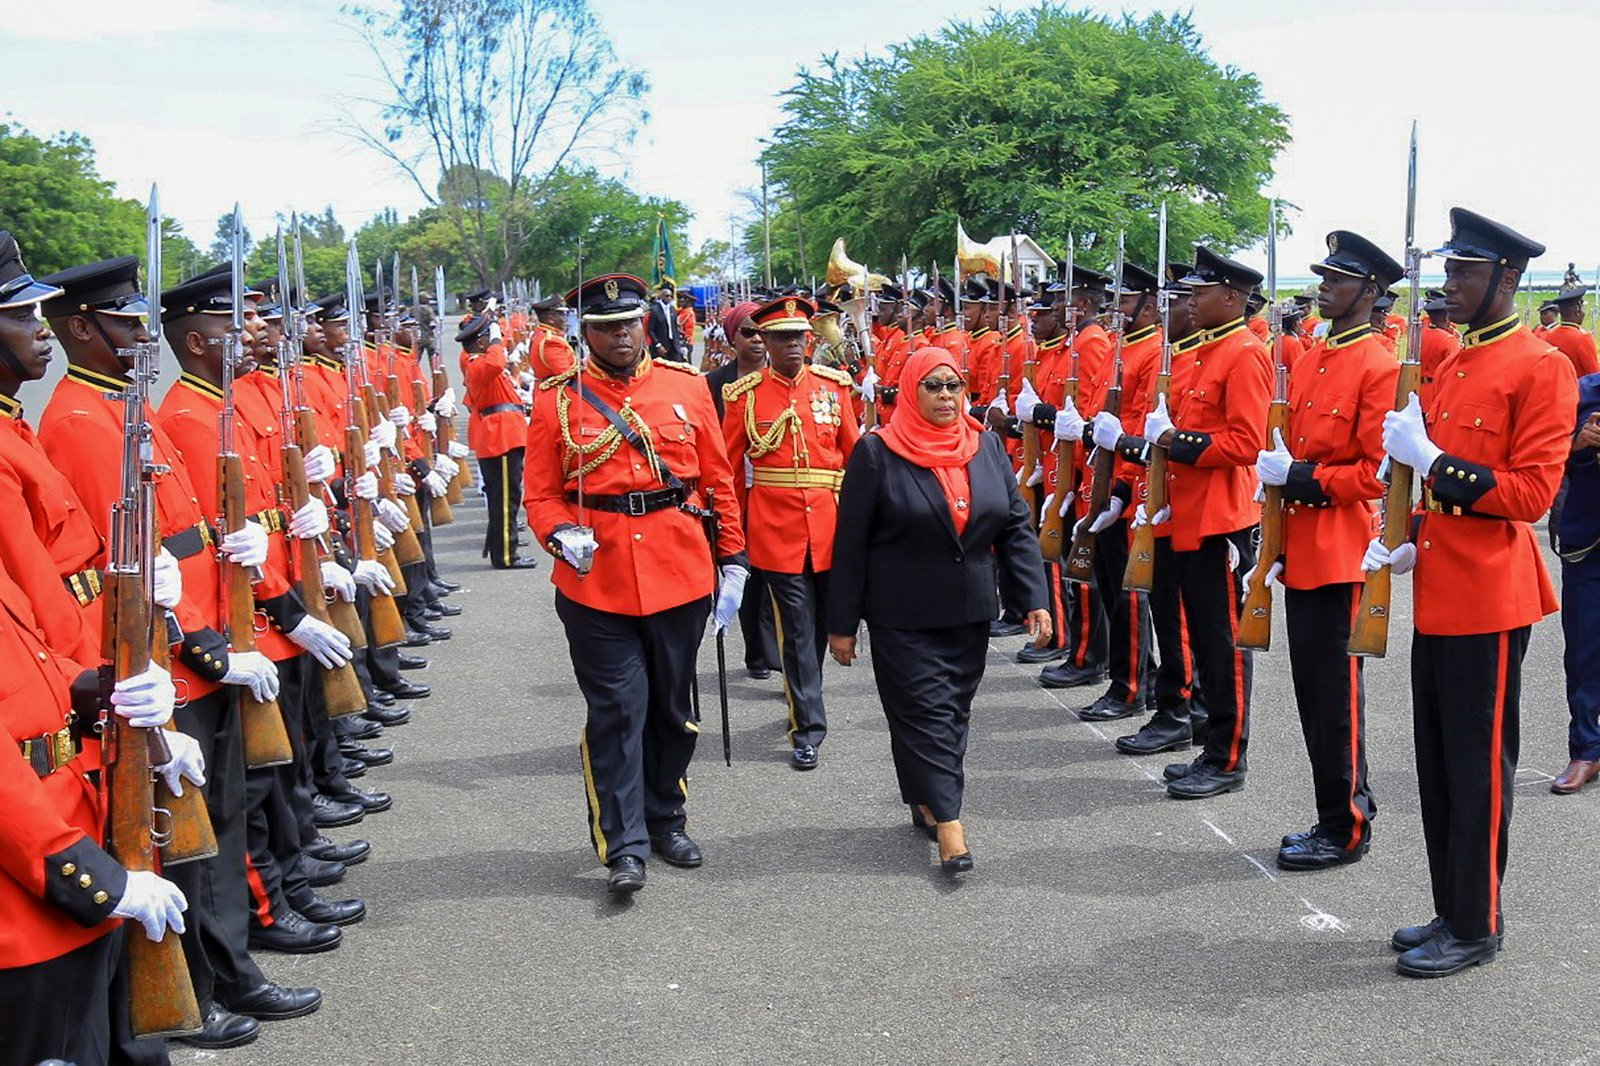 Tanzania's first female president takes office, breaking new ground for women in hijab